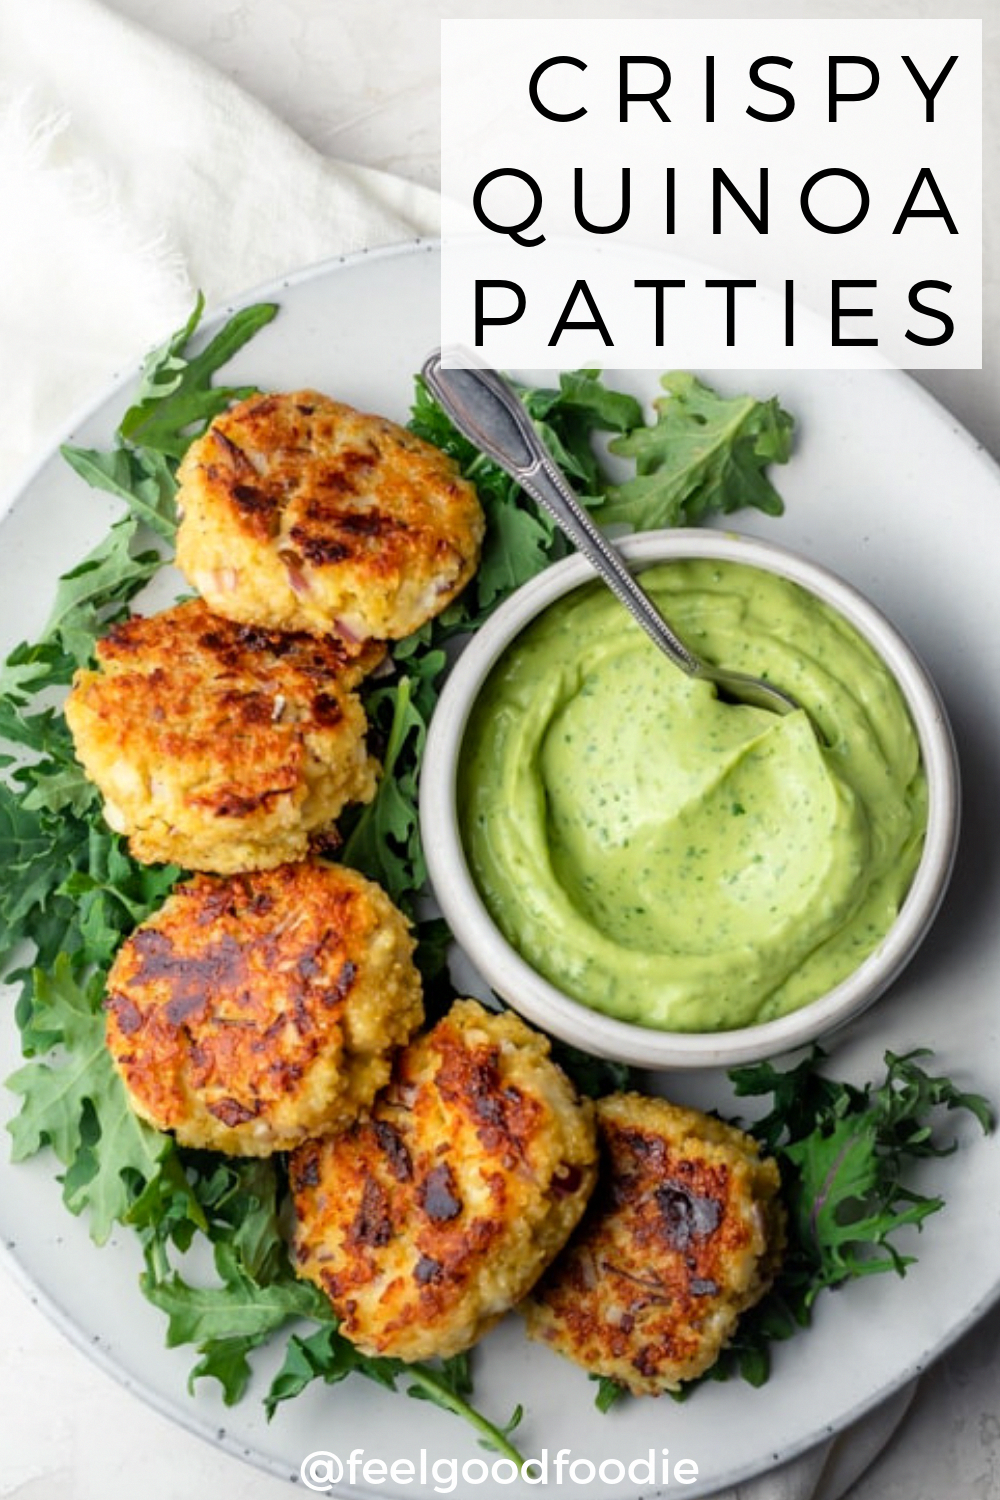 When you're looking for ways to use leftover quinoa, try these easy tasty vegetarian quinoa patties, served with an avocado yogurt dip - perfect appetizer! | Quinoa Recipes | Appetizers | Side Dishes | Vegetarian Food |